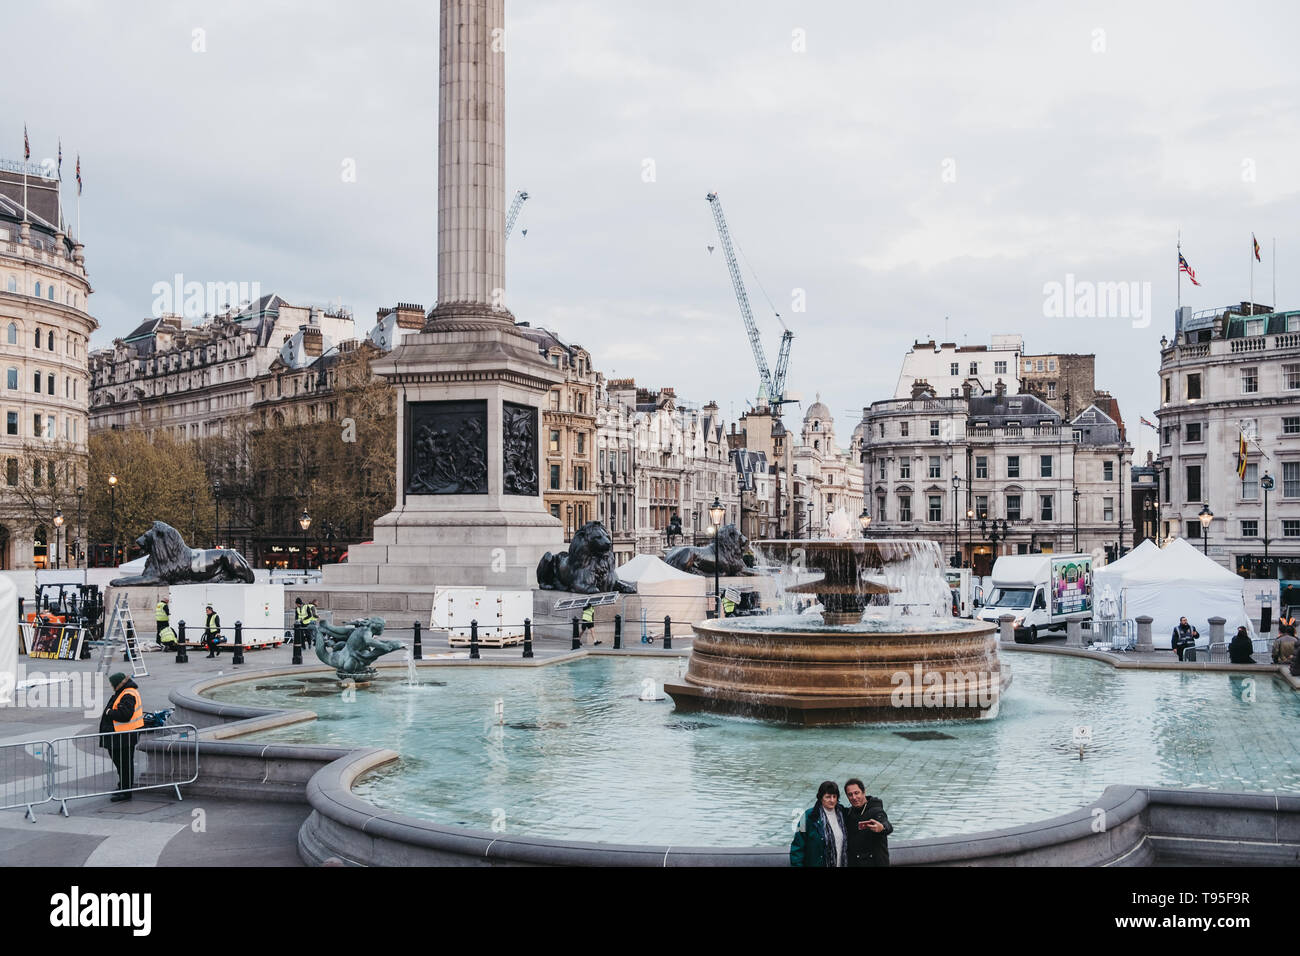 London, UK - April 14, 2019: People talking photos in front of fountains on Trafalgar Square, a public square in Charing Cross area of London that fea - Stock Image